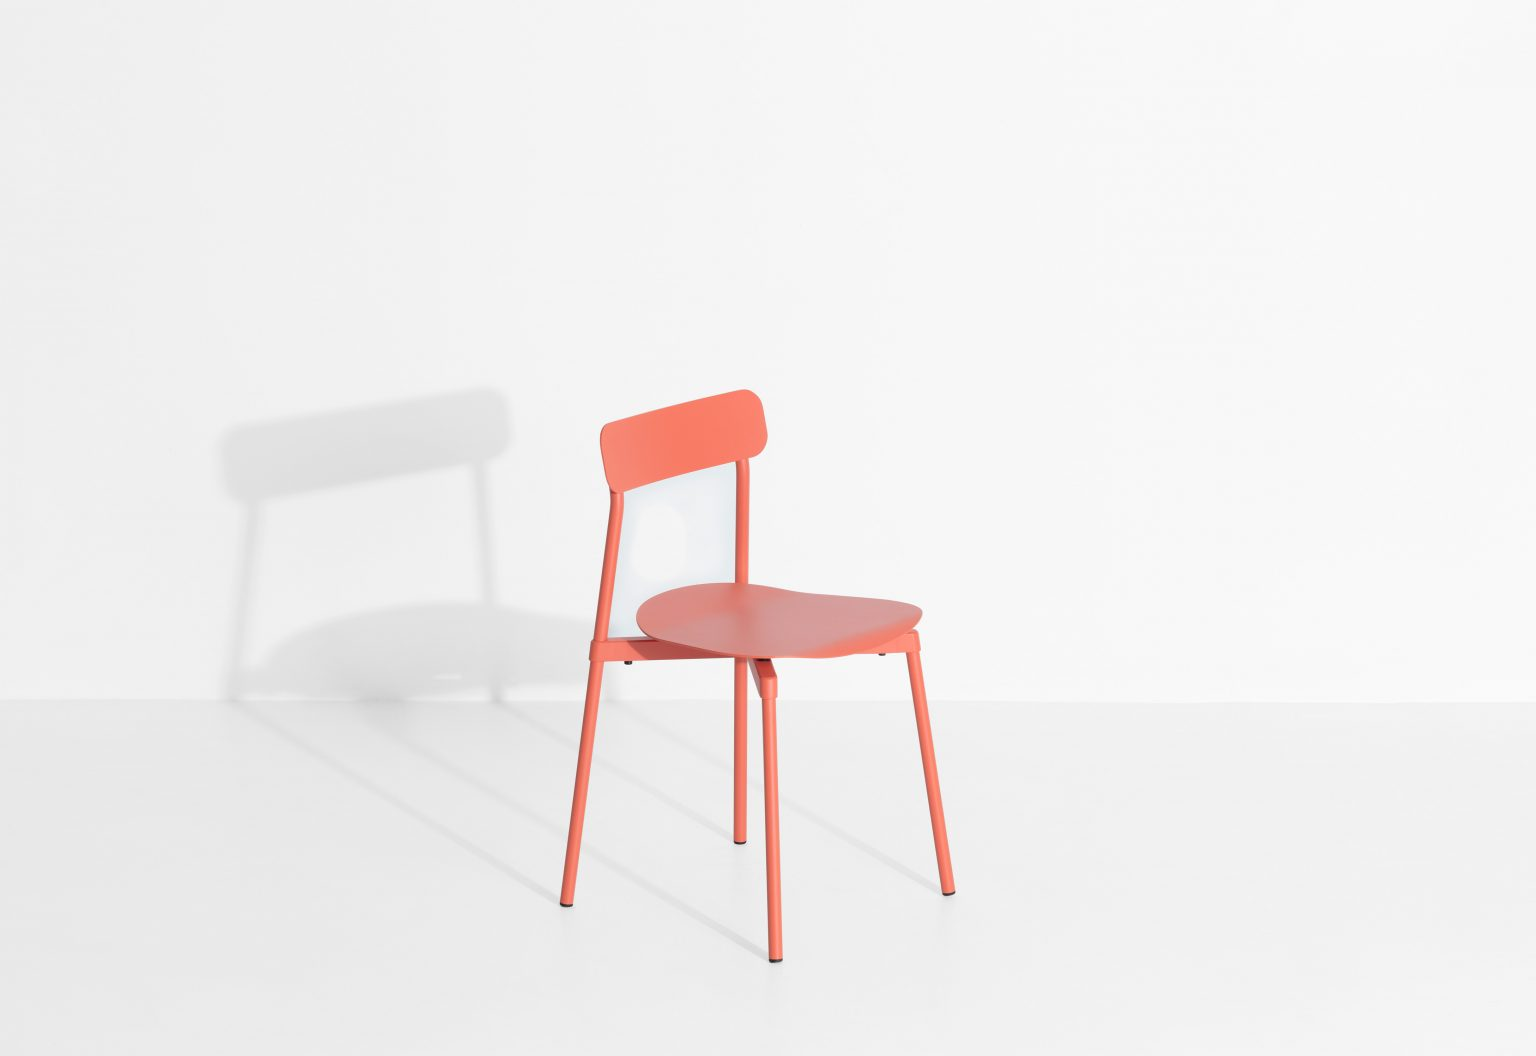 Biennale Interieur - Belgium's leading design and interior event - M0810105_fromme_chair_coral_©pf_packshot_hd-4.jpg